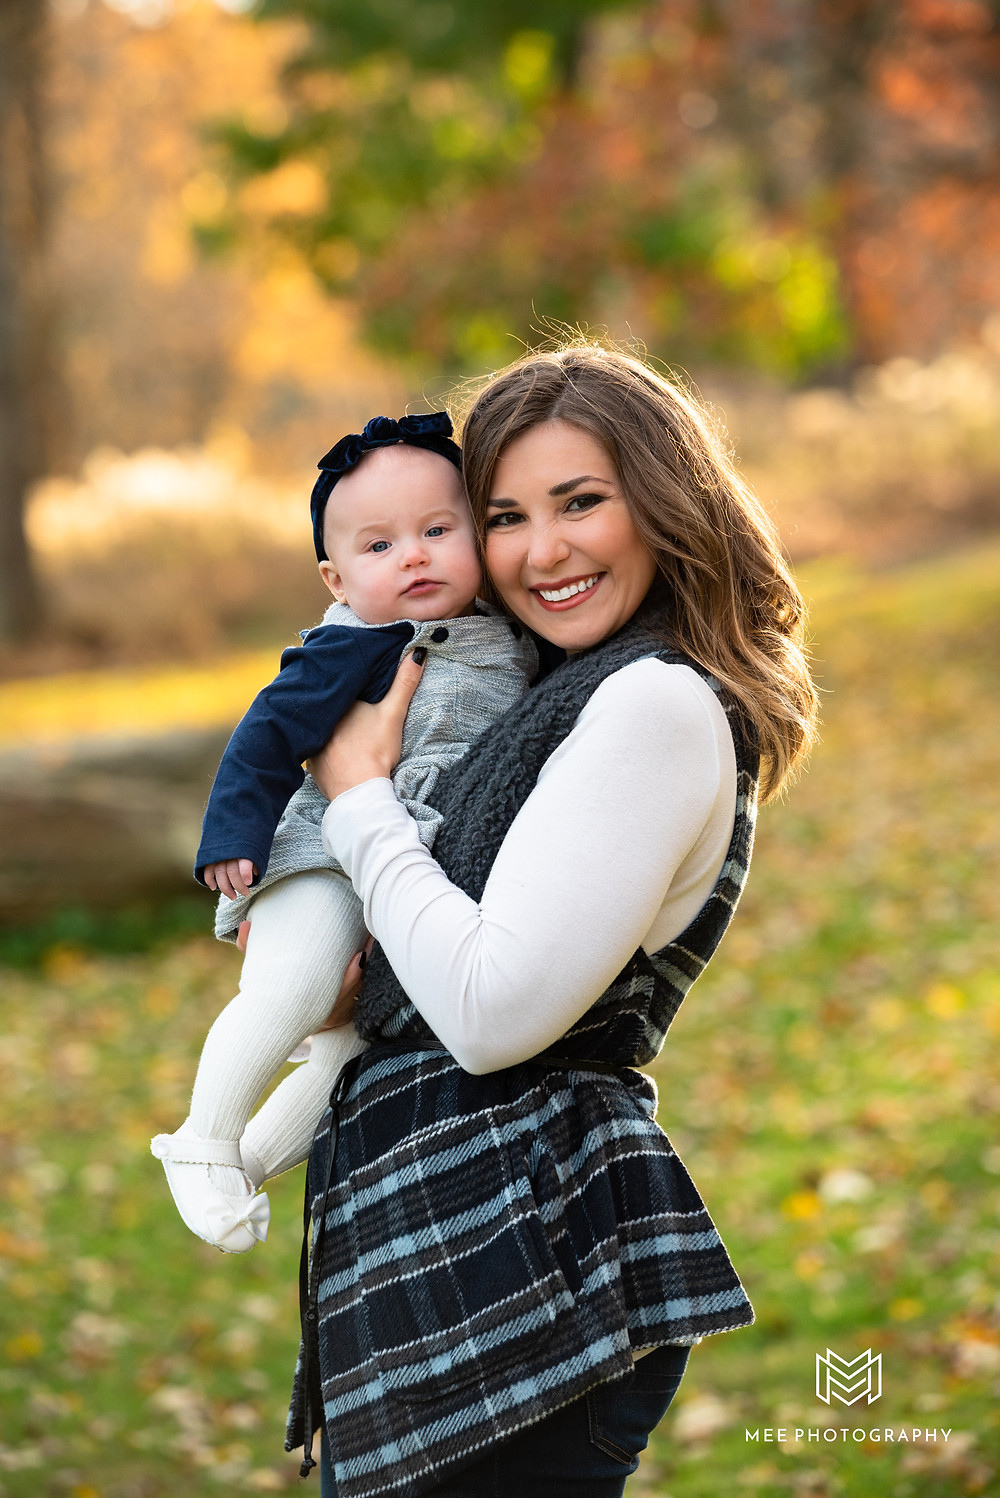 A mom holding her baby dressed in navy and white during their fall photo session